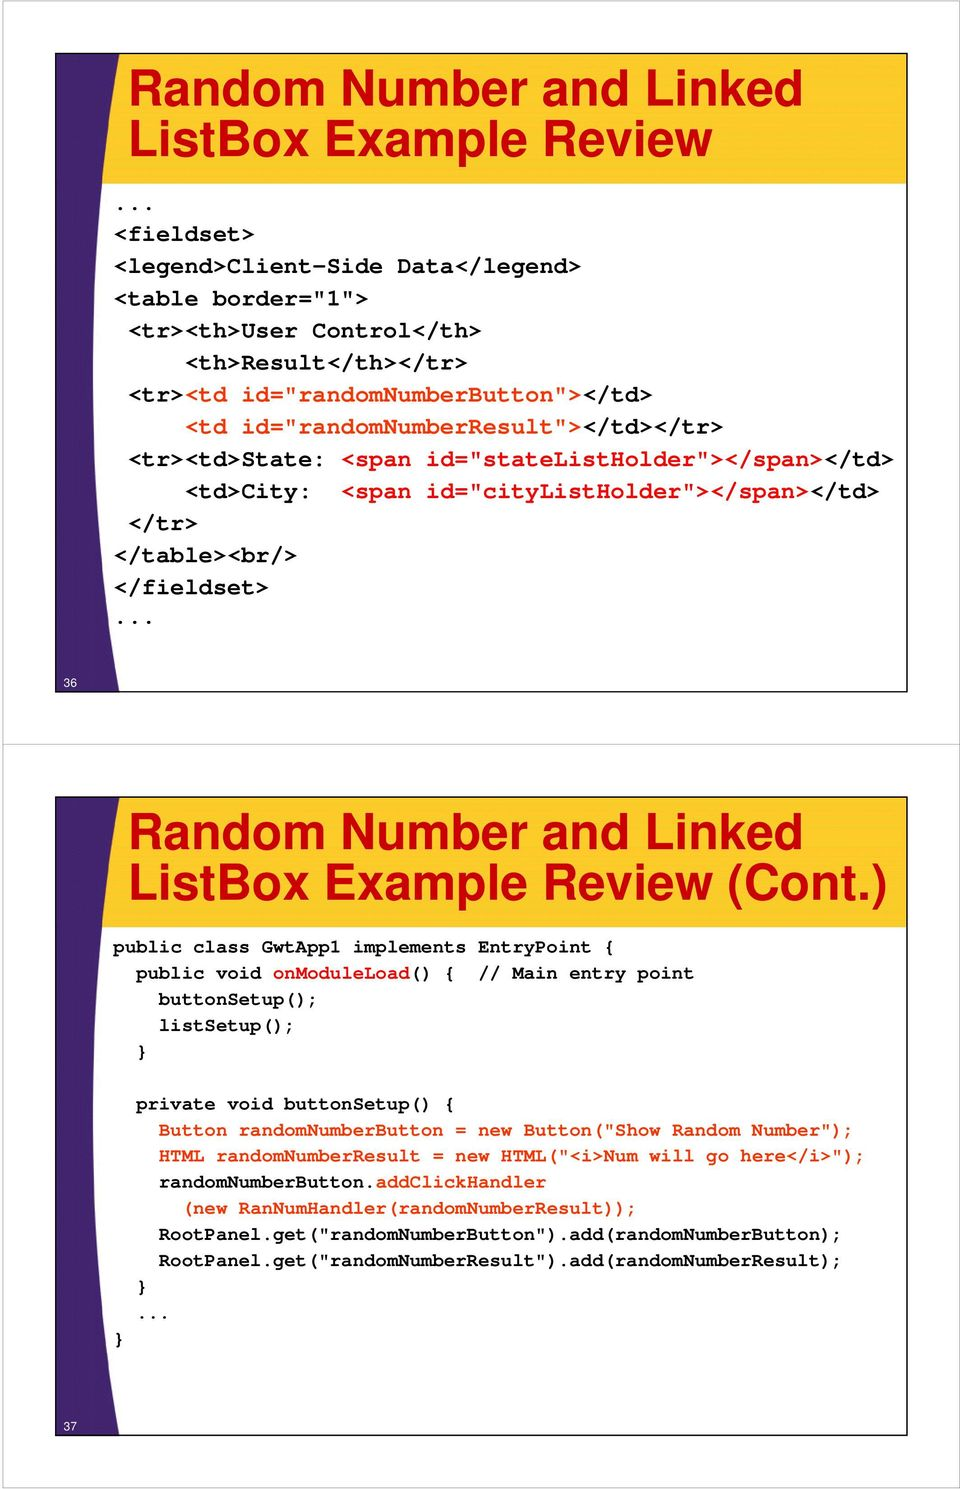 Linked ListBox Example Review (Cont.